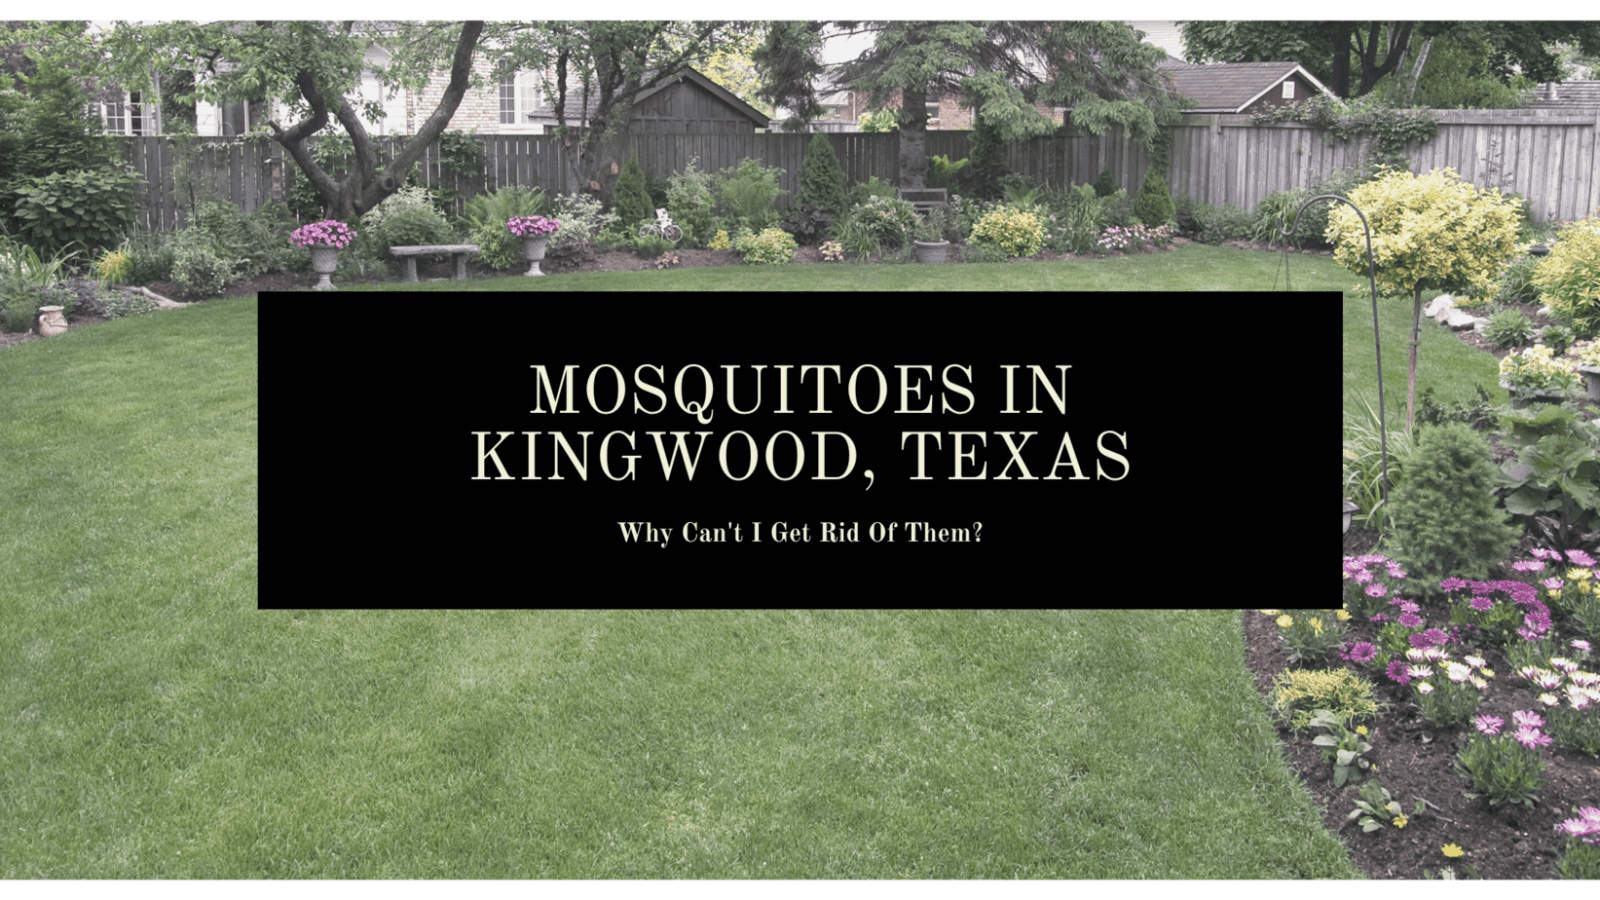 Why Can't I Get Rid of Mosquitoes in My Kingwood, Texas Backyard?